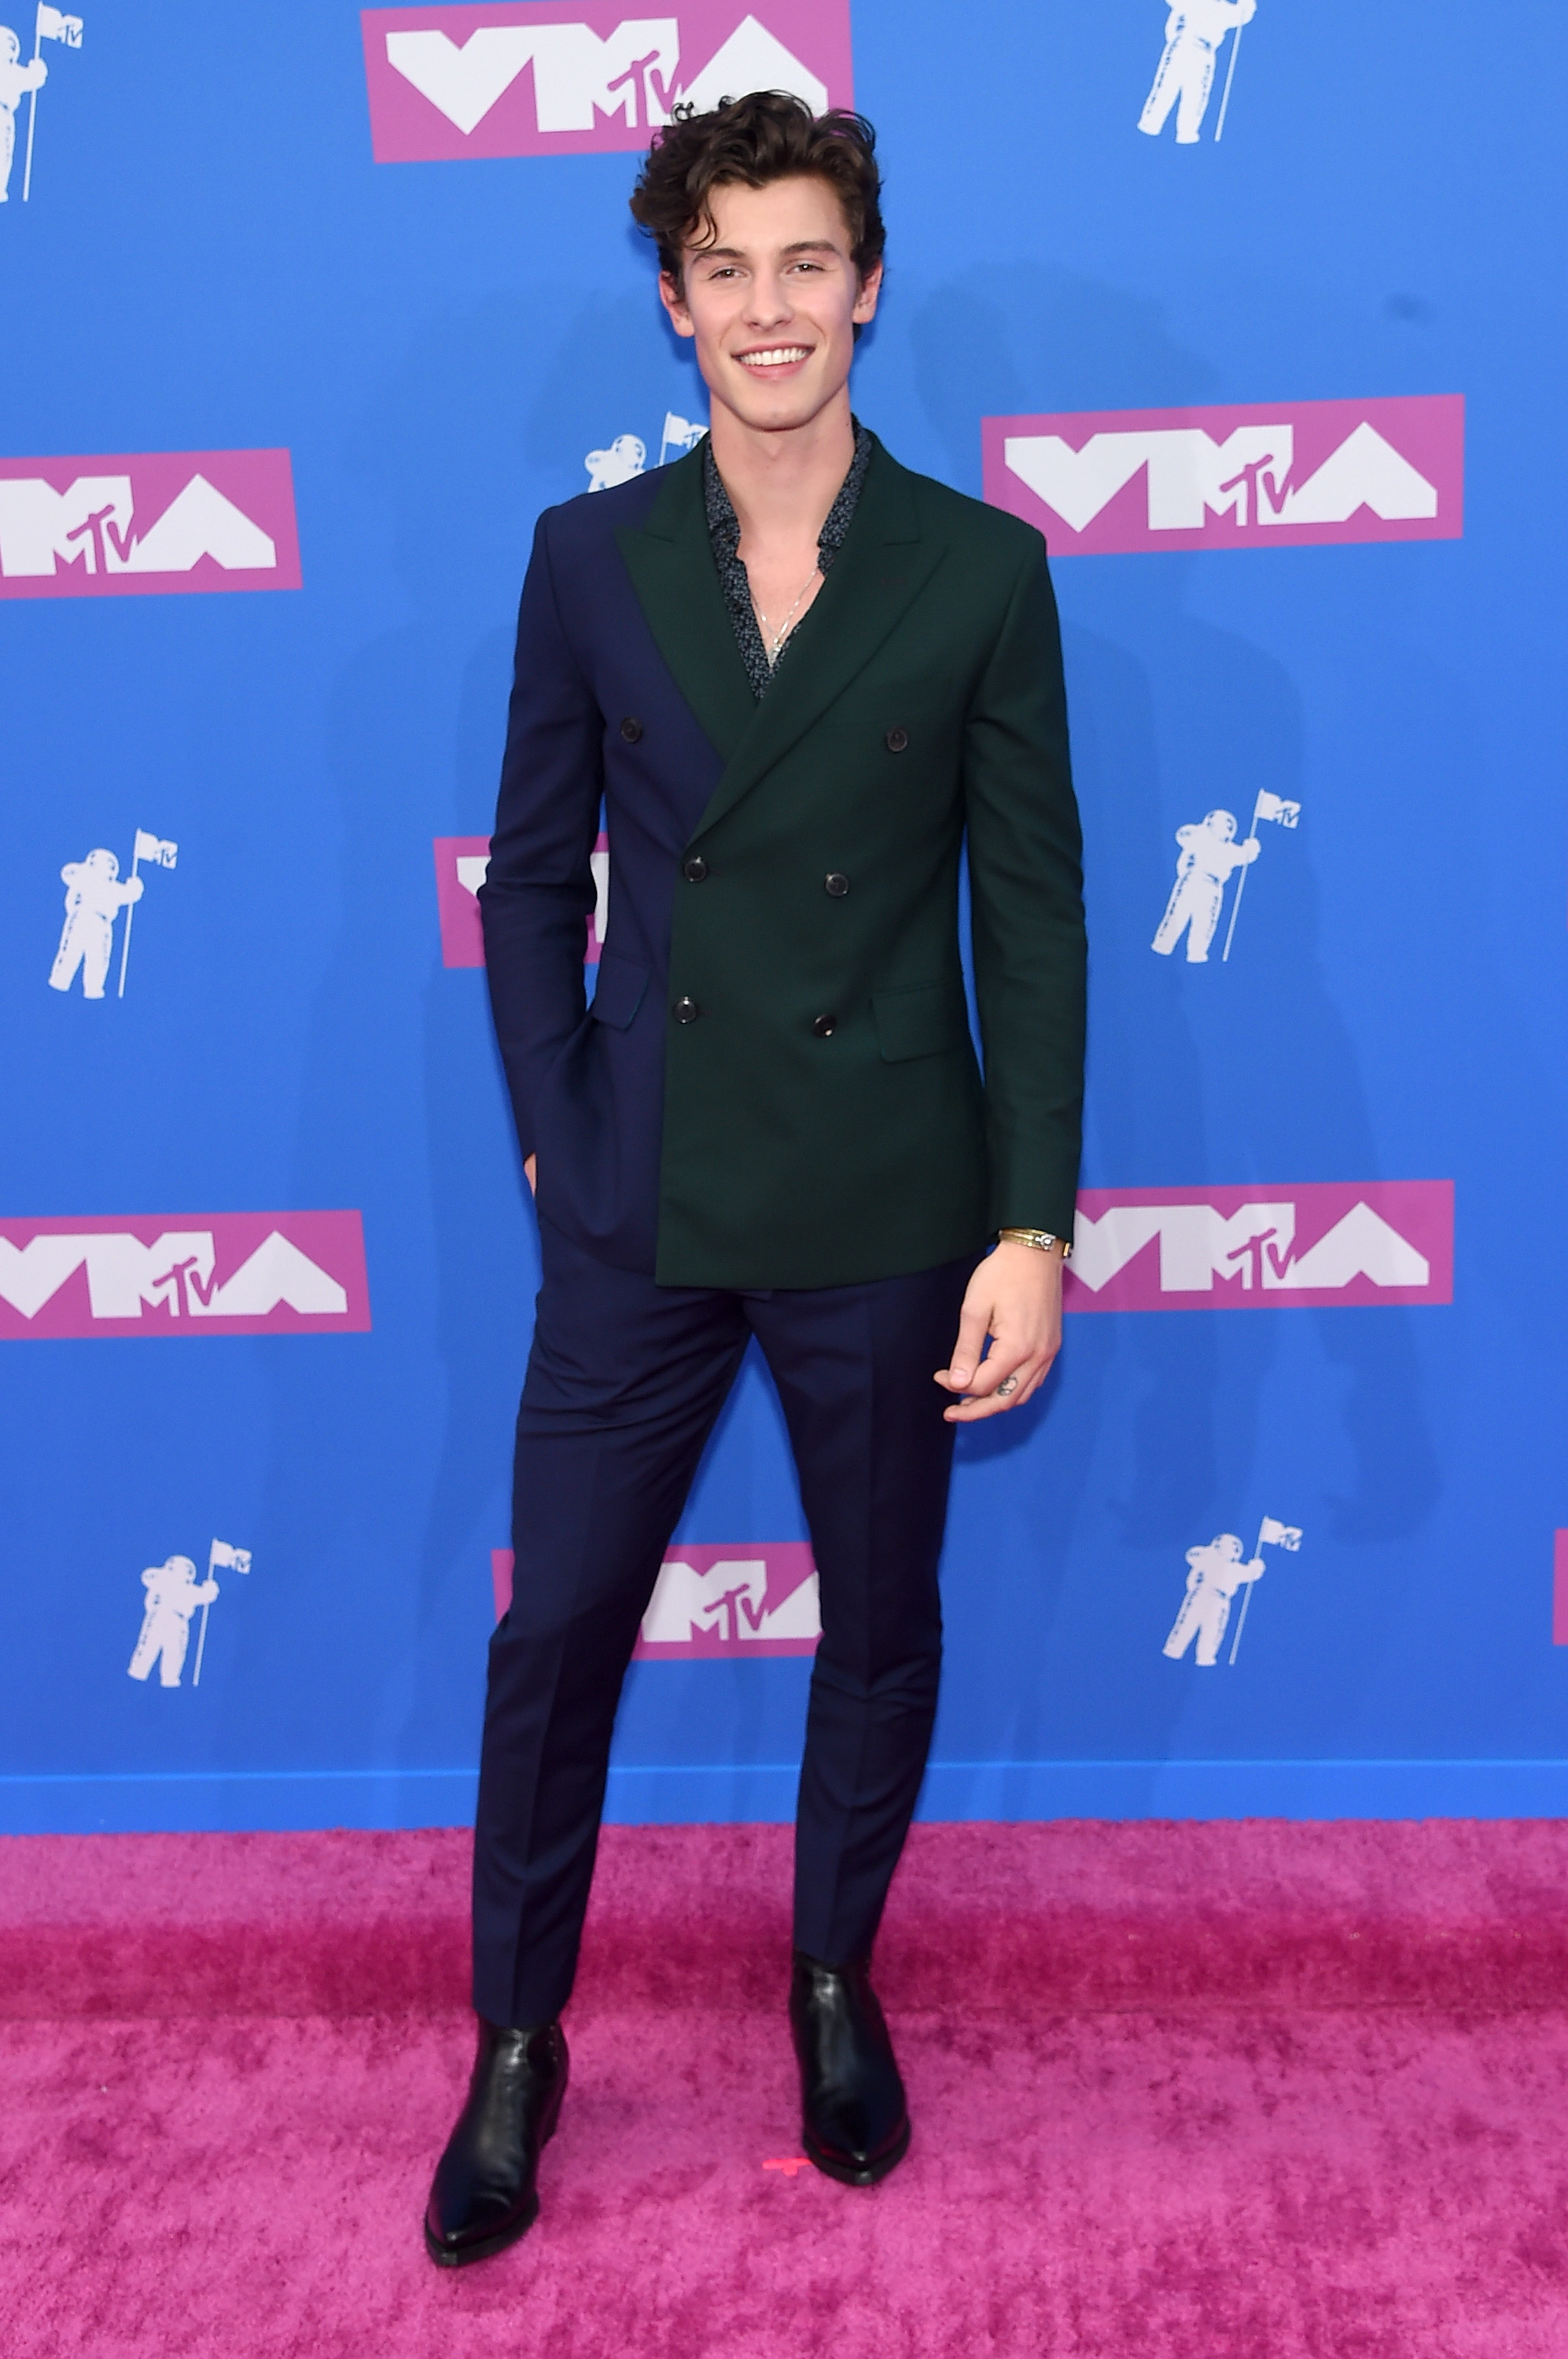 Shawn Mendes attends the 2018 MTV Video Music Awards at Radio City Music Hall on August 20, 2018 in New York City.